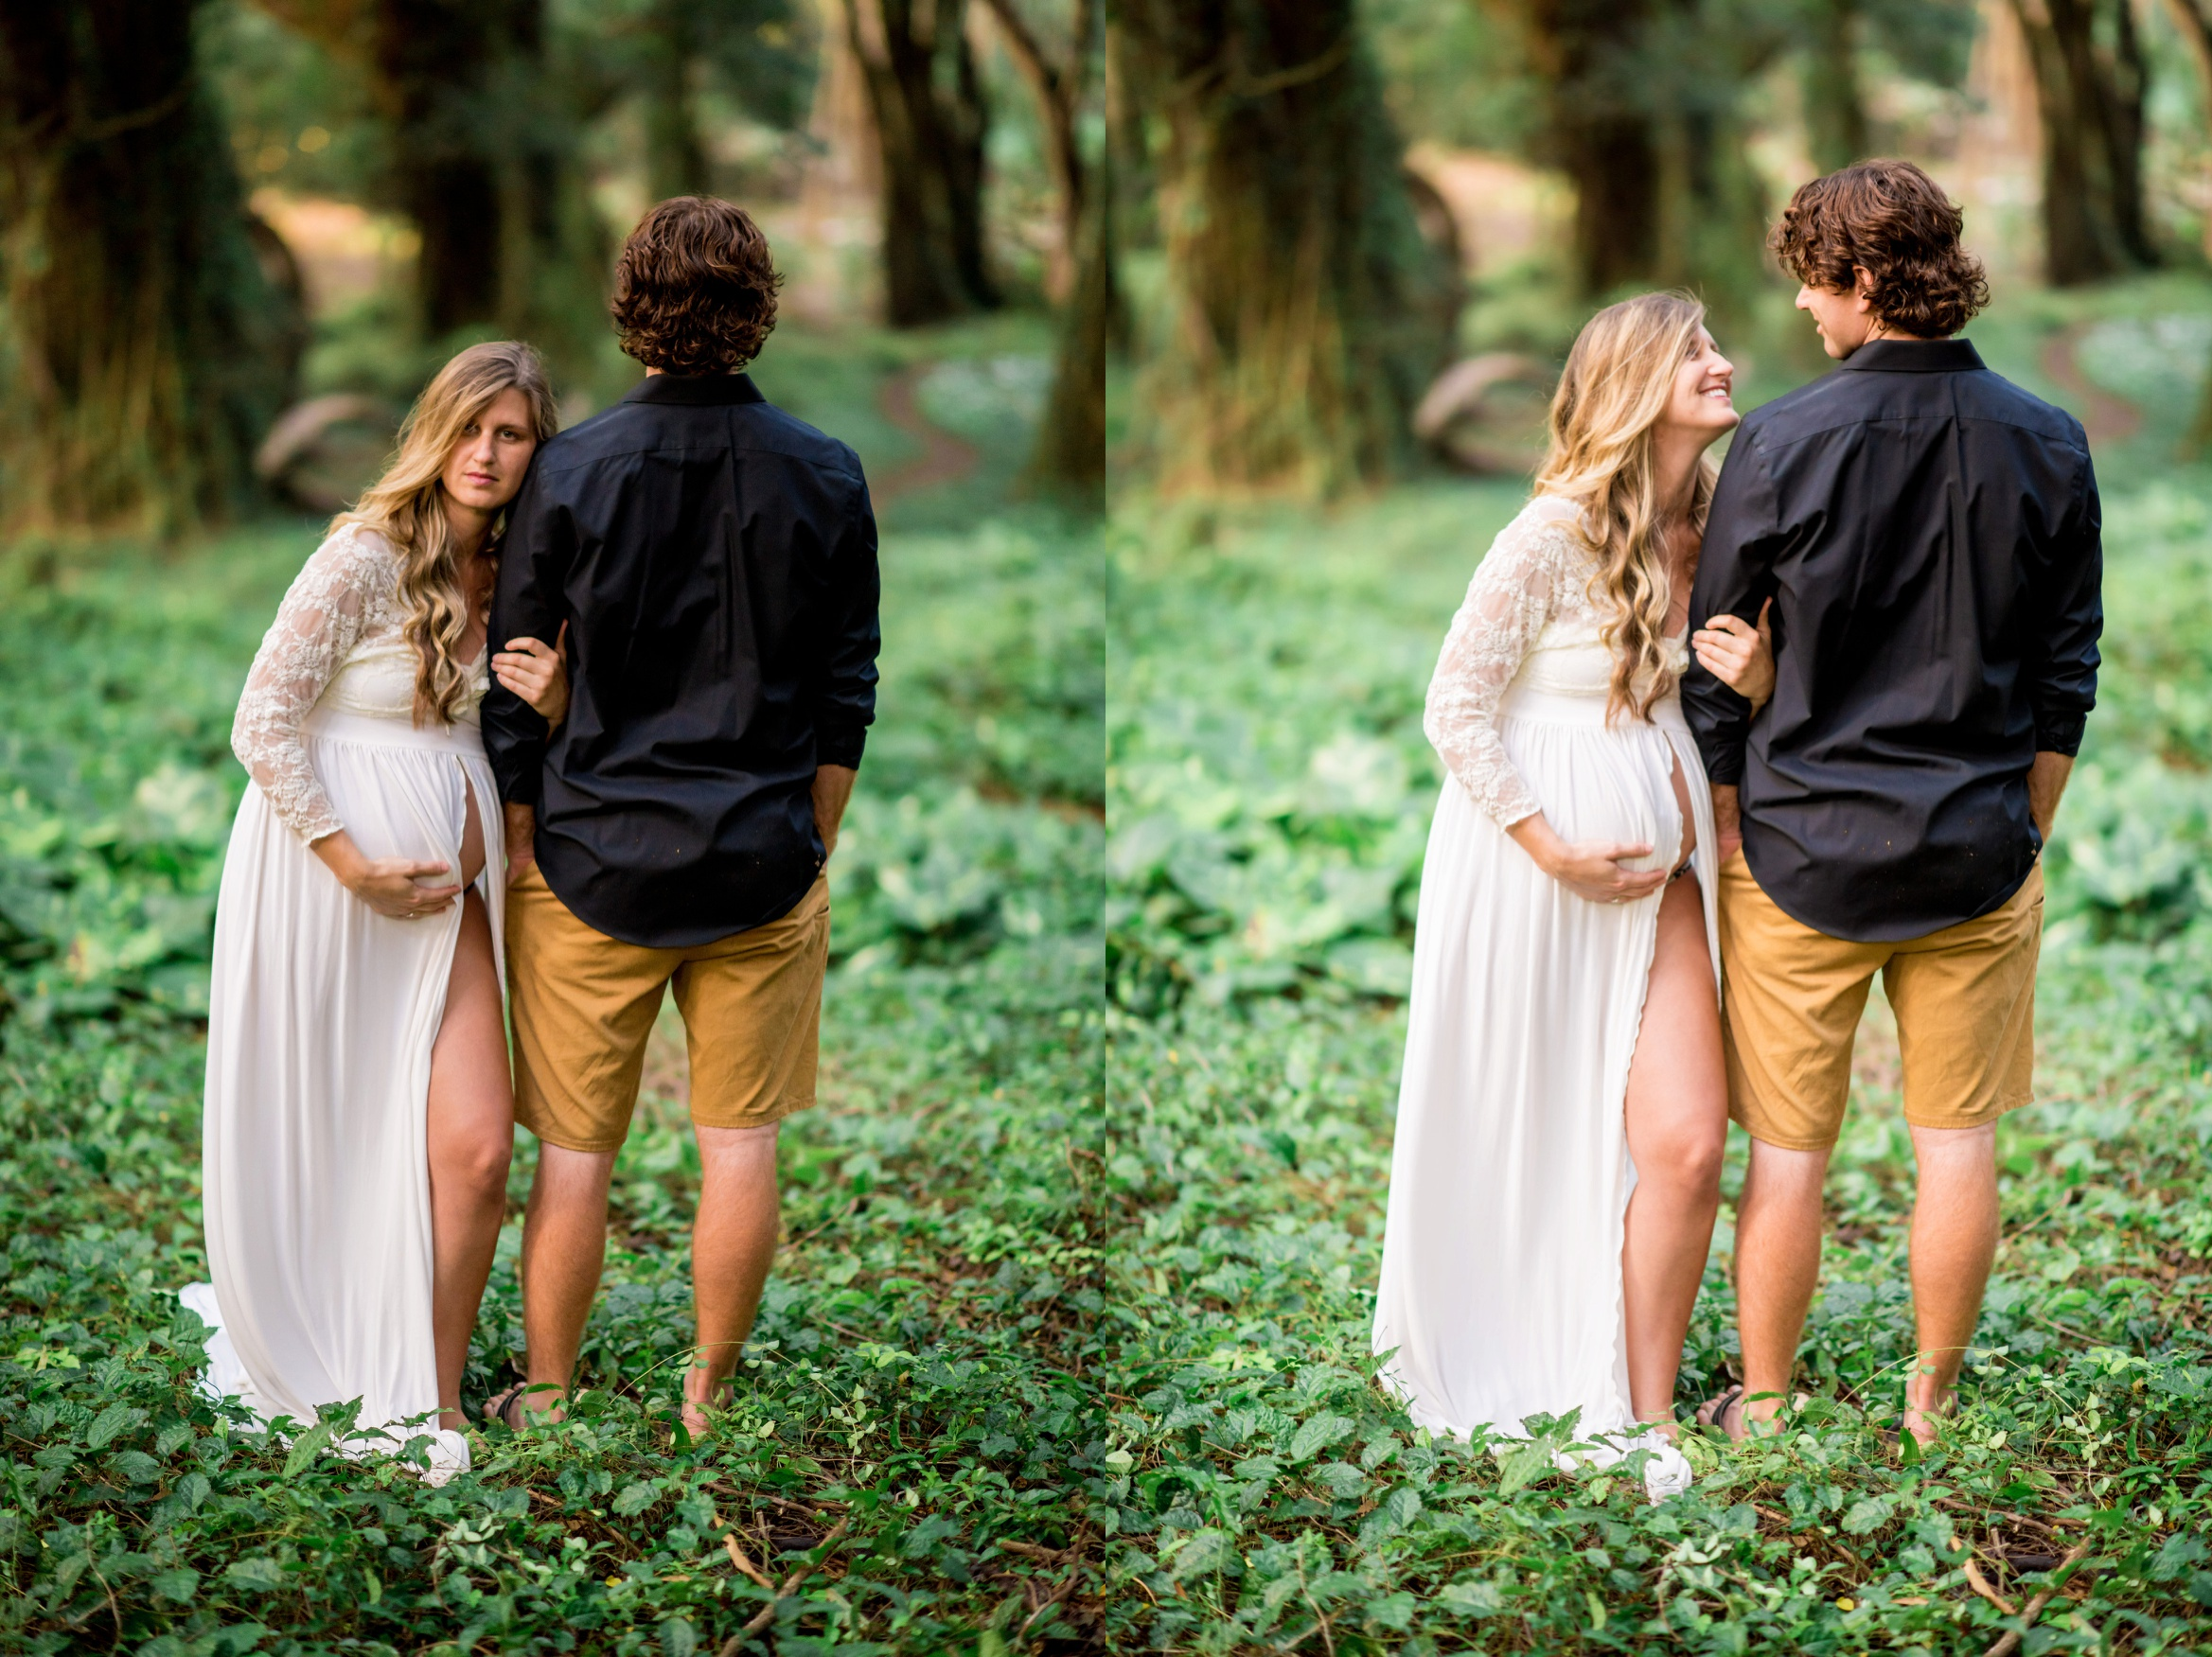 maternity picture ideas, what to wear for maternity pictures, Dreamy Hawaii Maternity Session